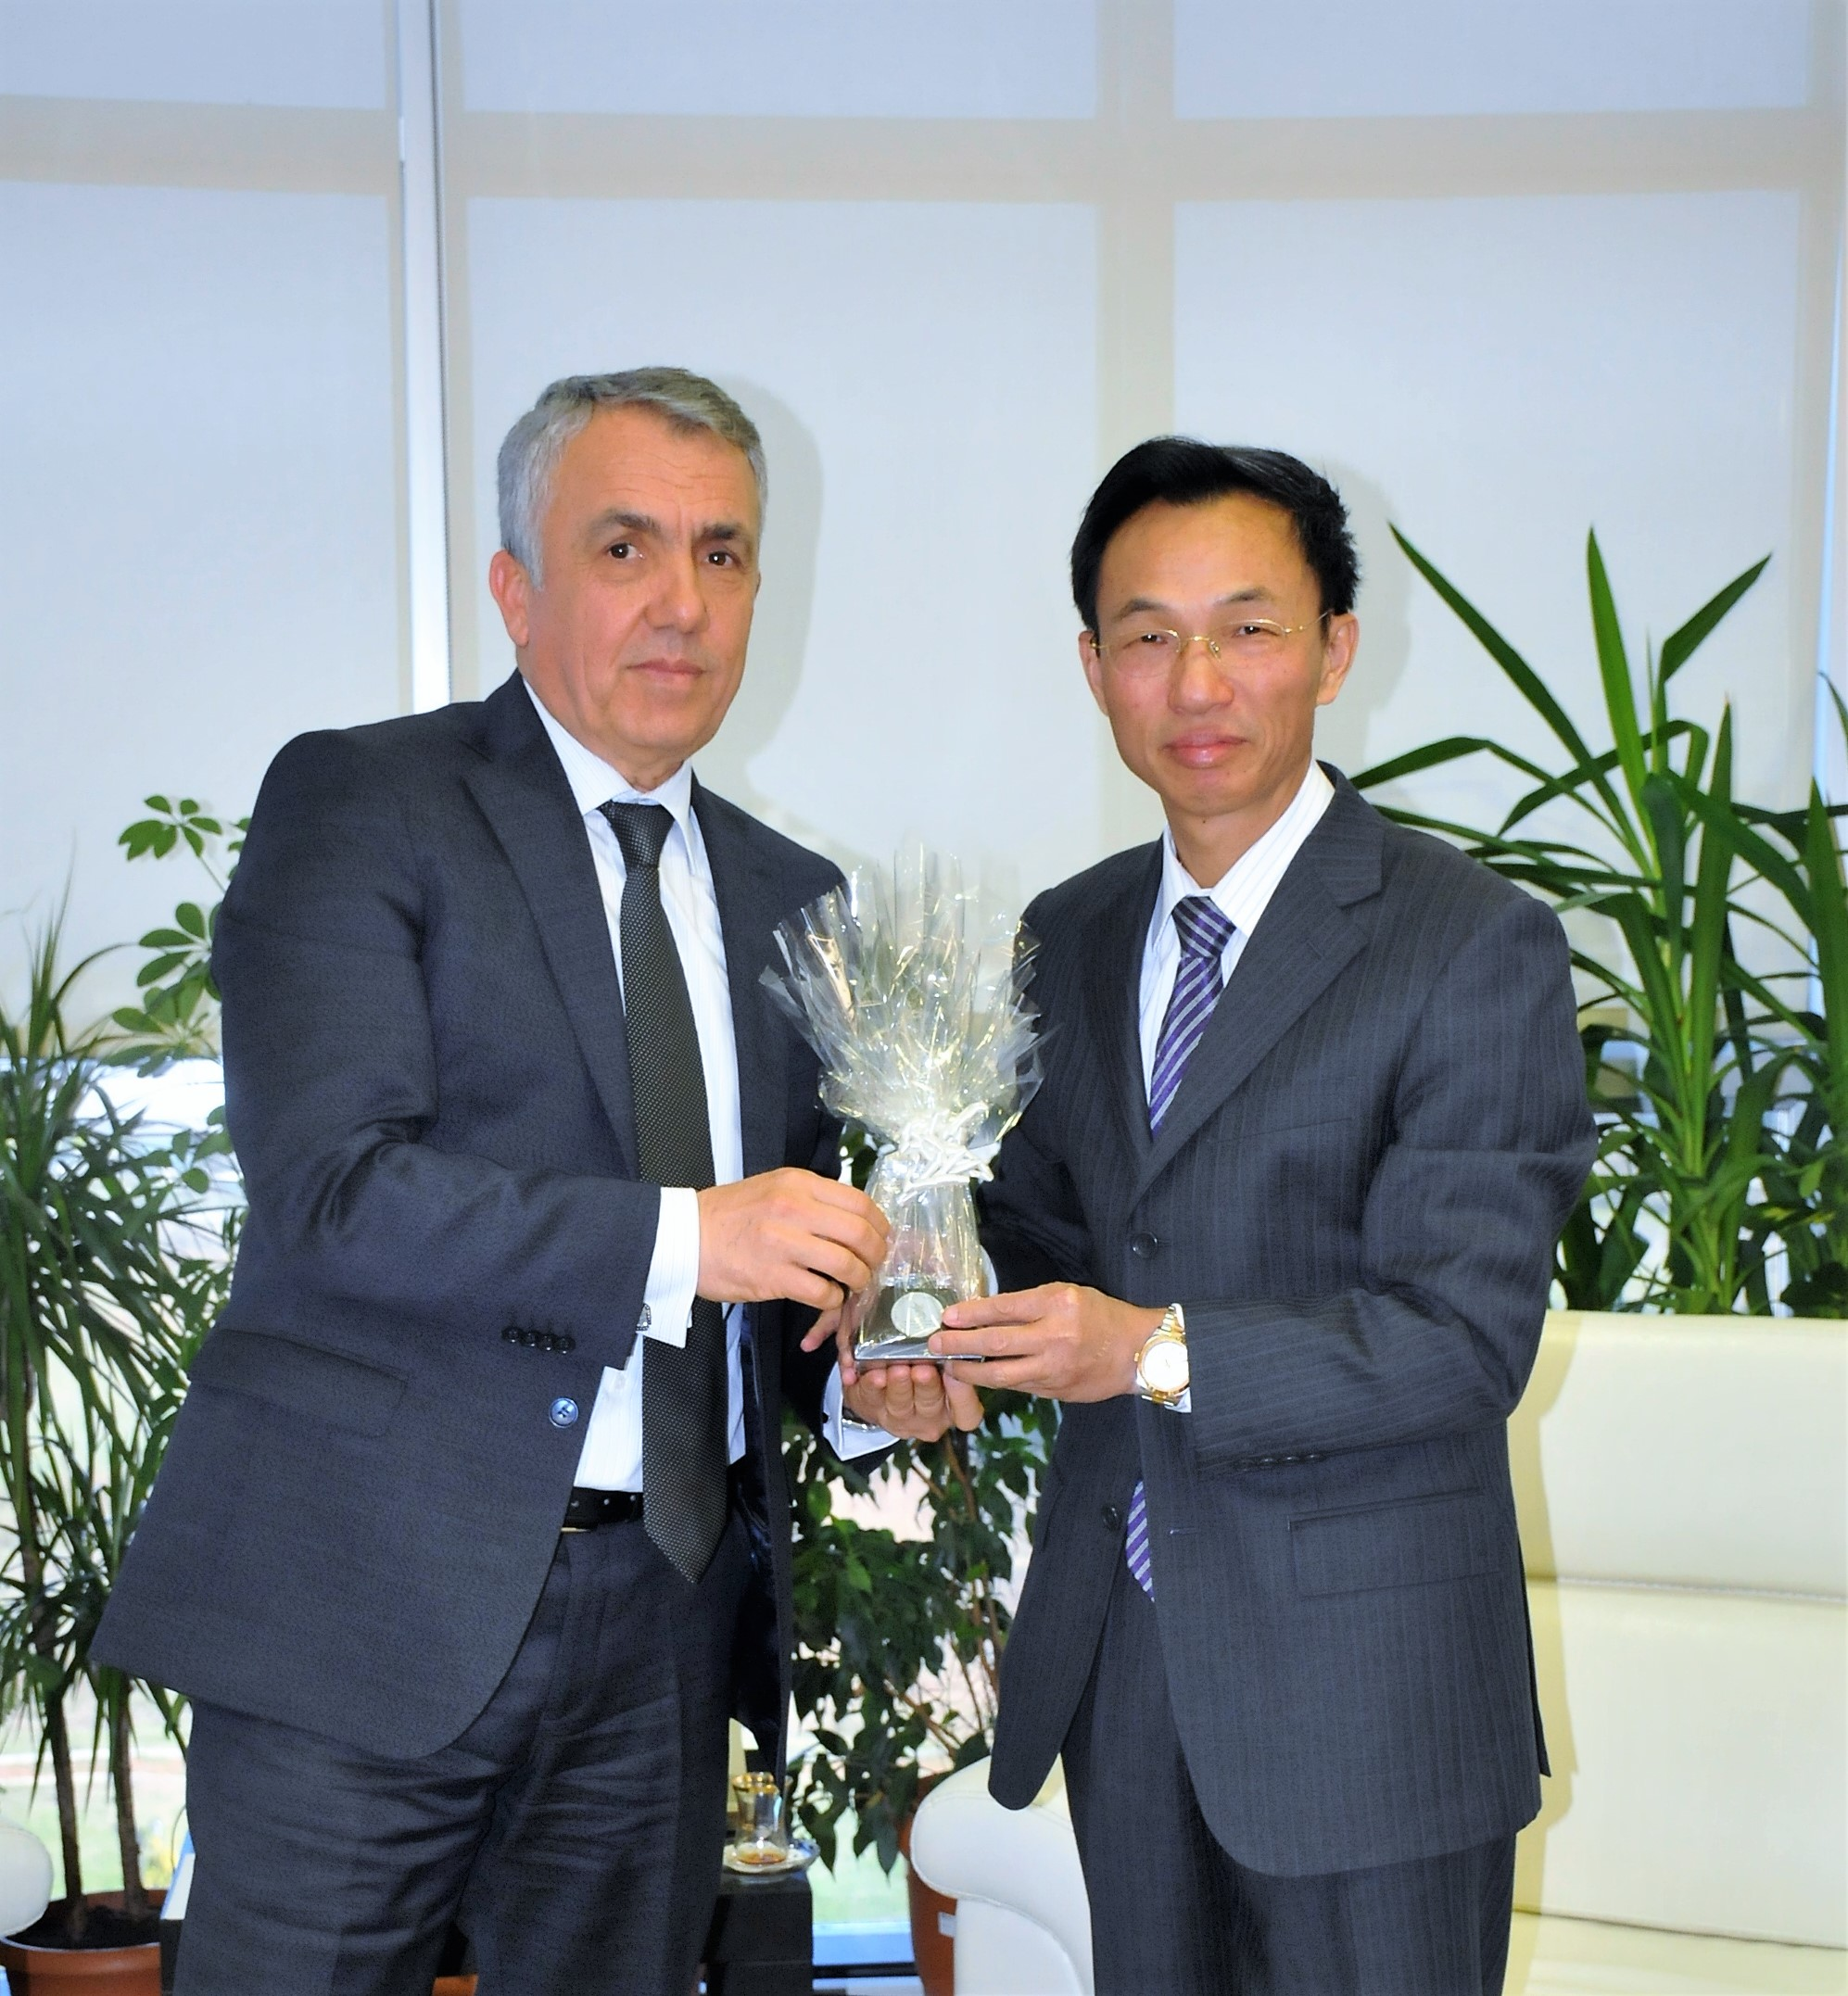 http://www.omu.edu.tr/sites/default/files/files/ambassador_of_the_peoples_republic_of_china_visits_rector_bilgic/dsc_0028.jpg